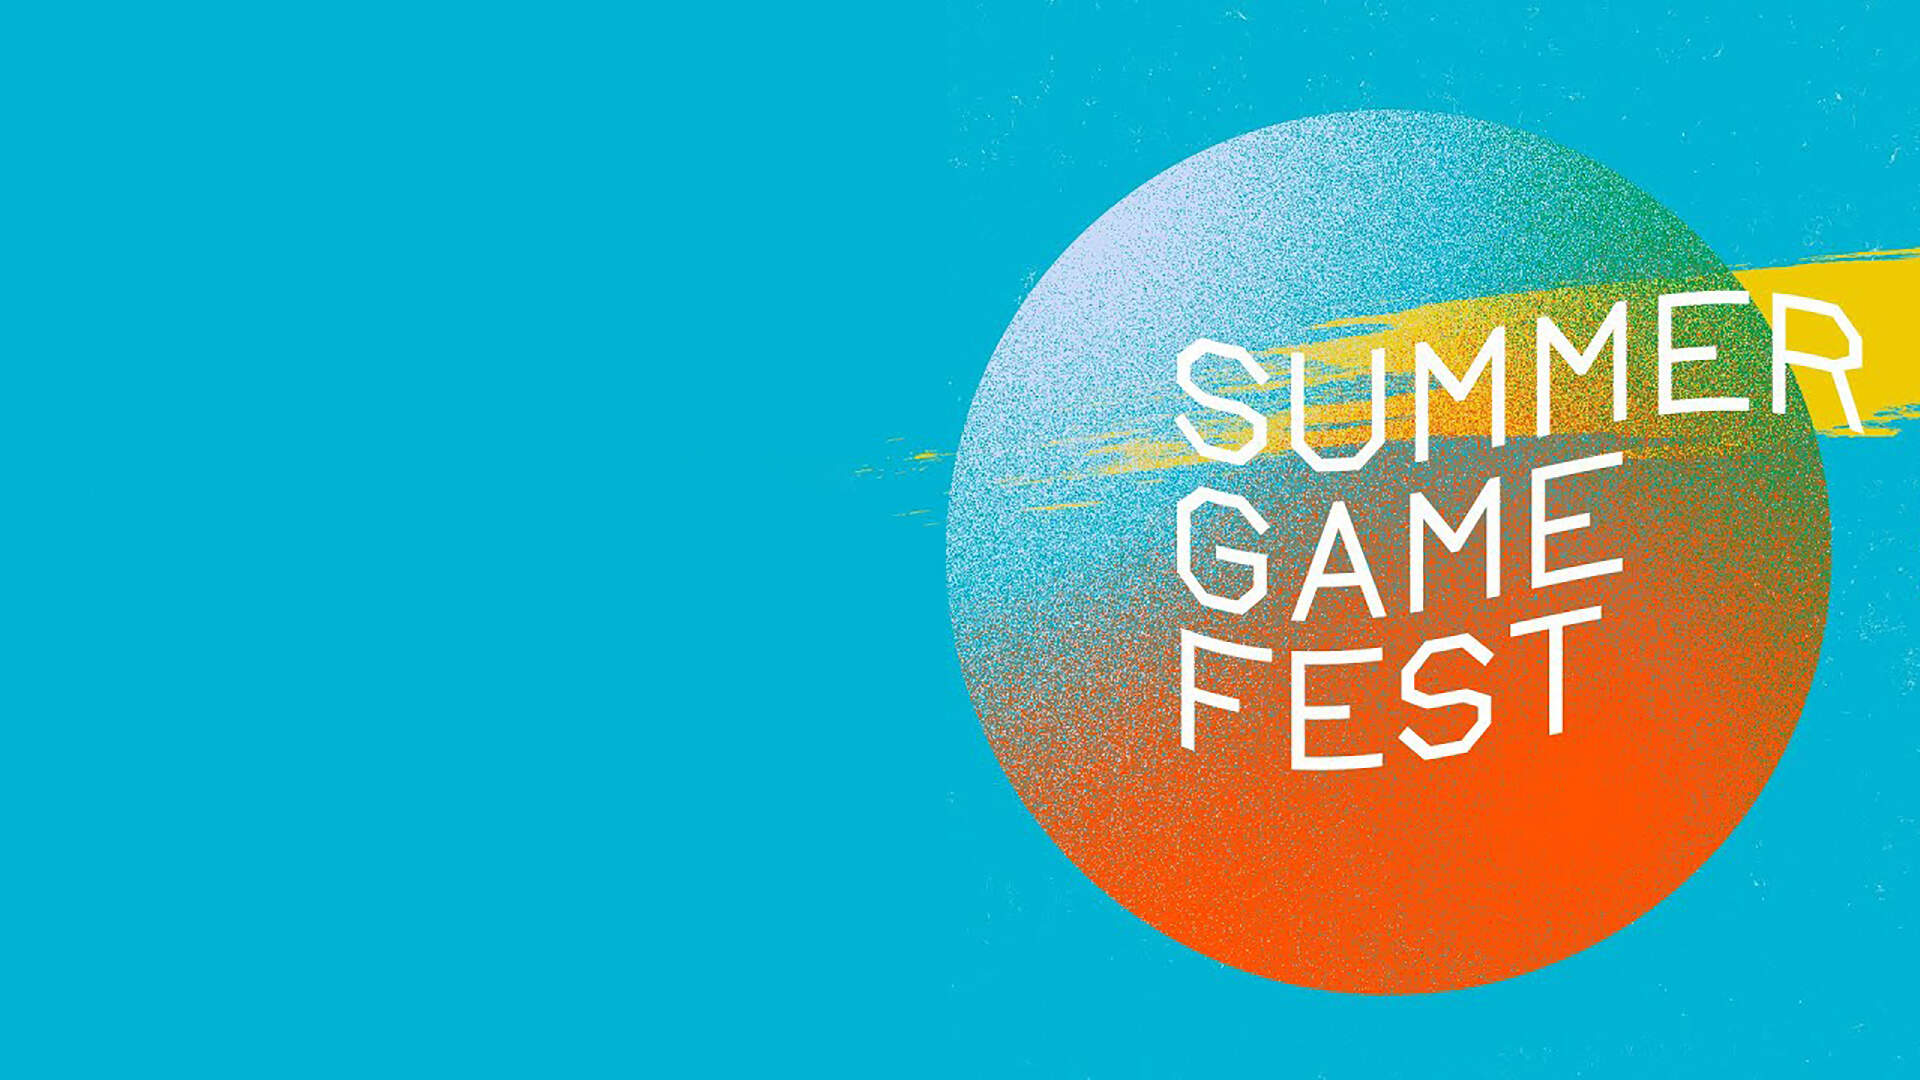 Geoff Keighley Announces Summer Game Fest, a Four-Month Long Season of Gaming News and Demos